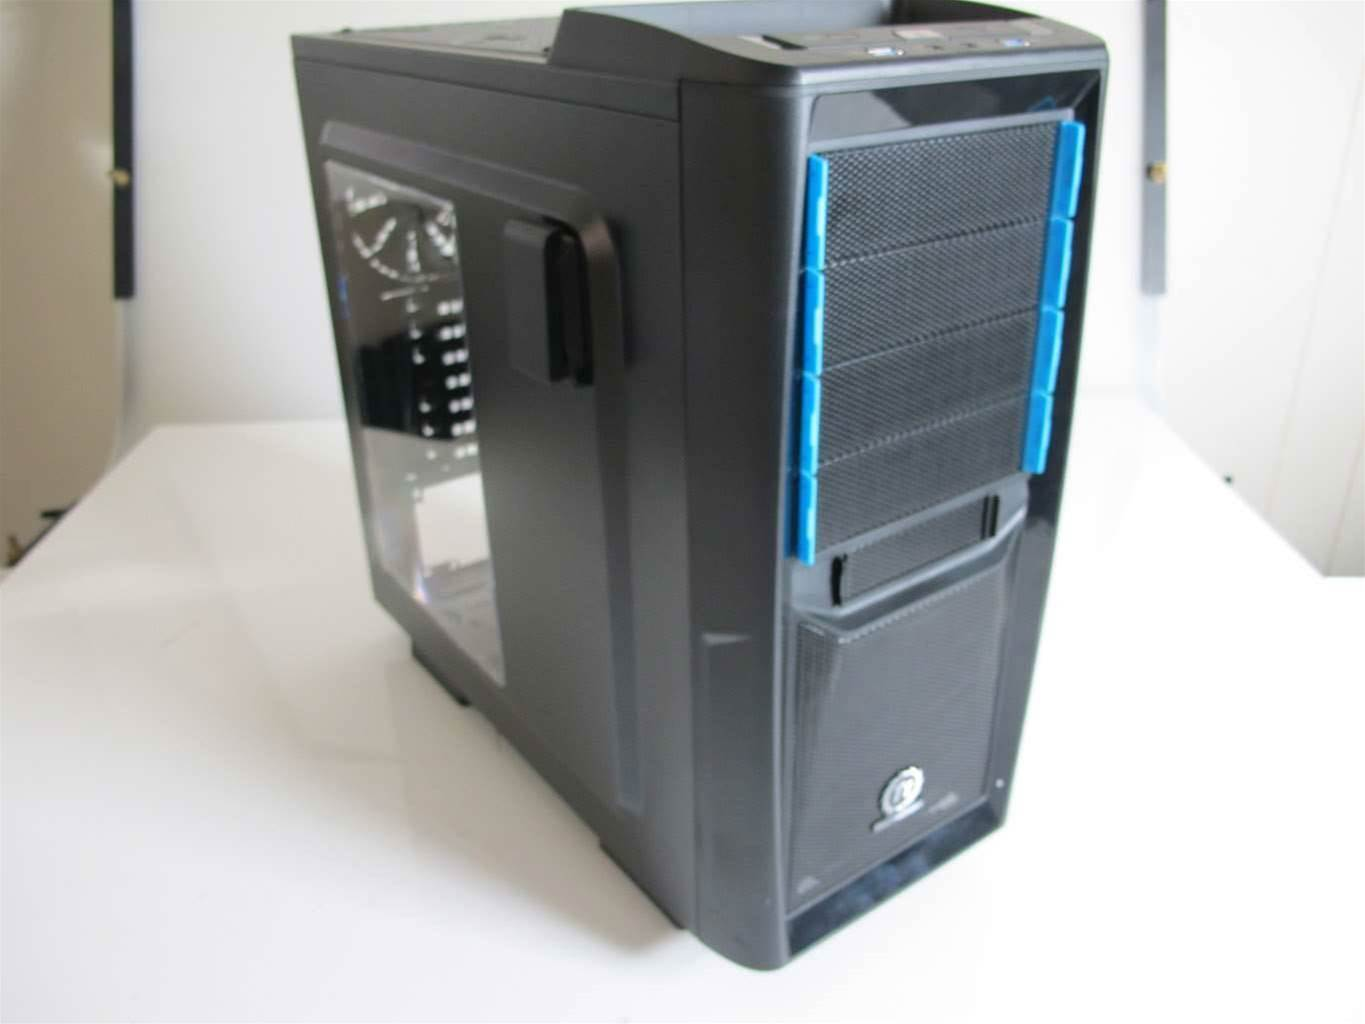 Unboxed: Thermaltake Chaser A41